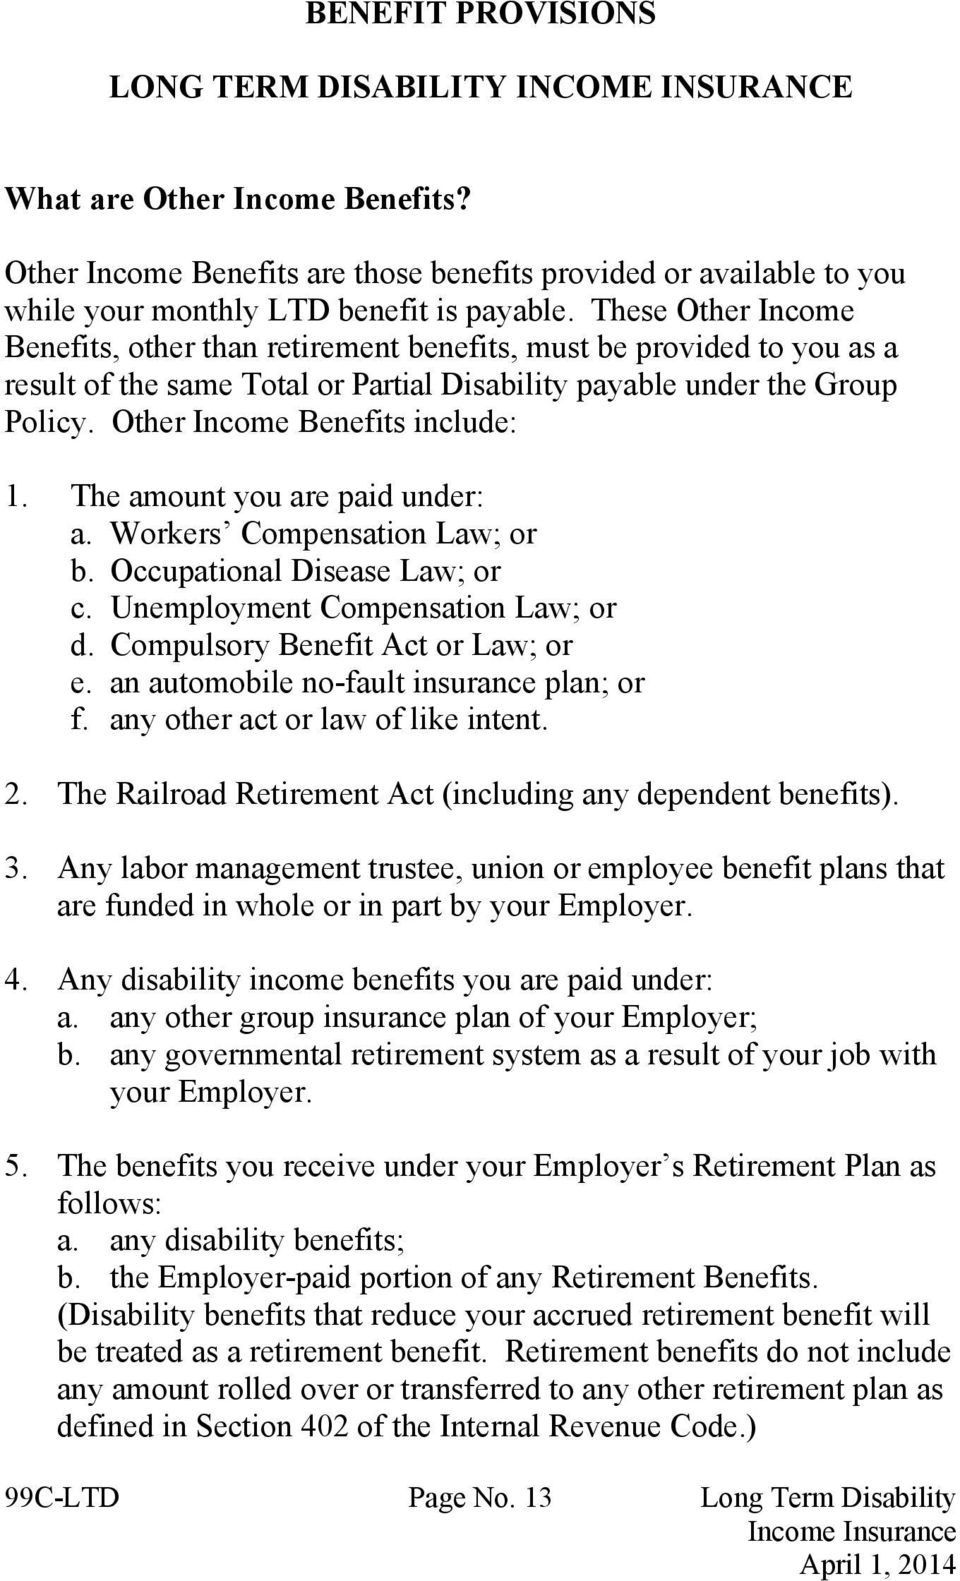 These Other Income Benefits, other than retirement benefits, must be provided to you as a result of the same Total or Partial Disability payable under the Group Policy.